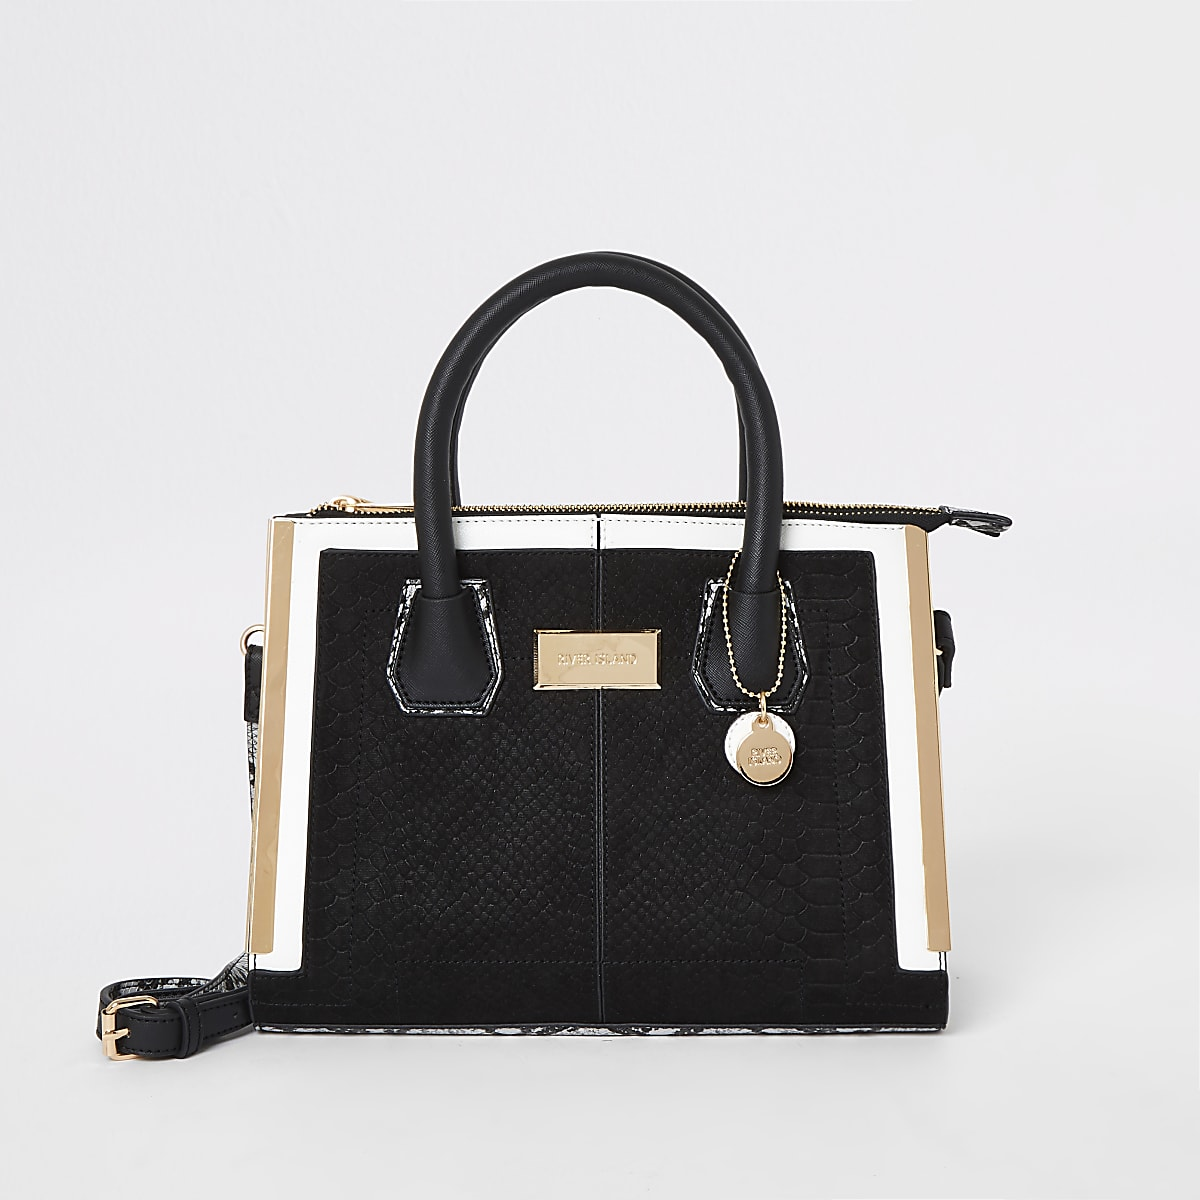 Black gold tone edge tote bag